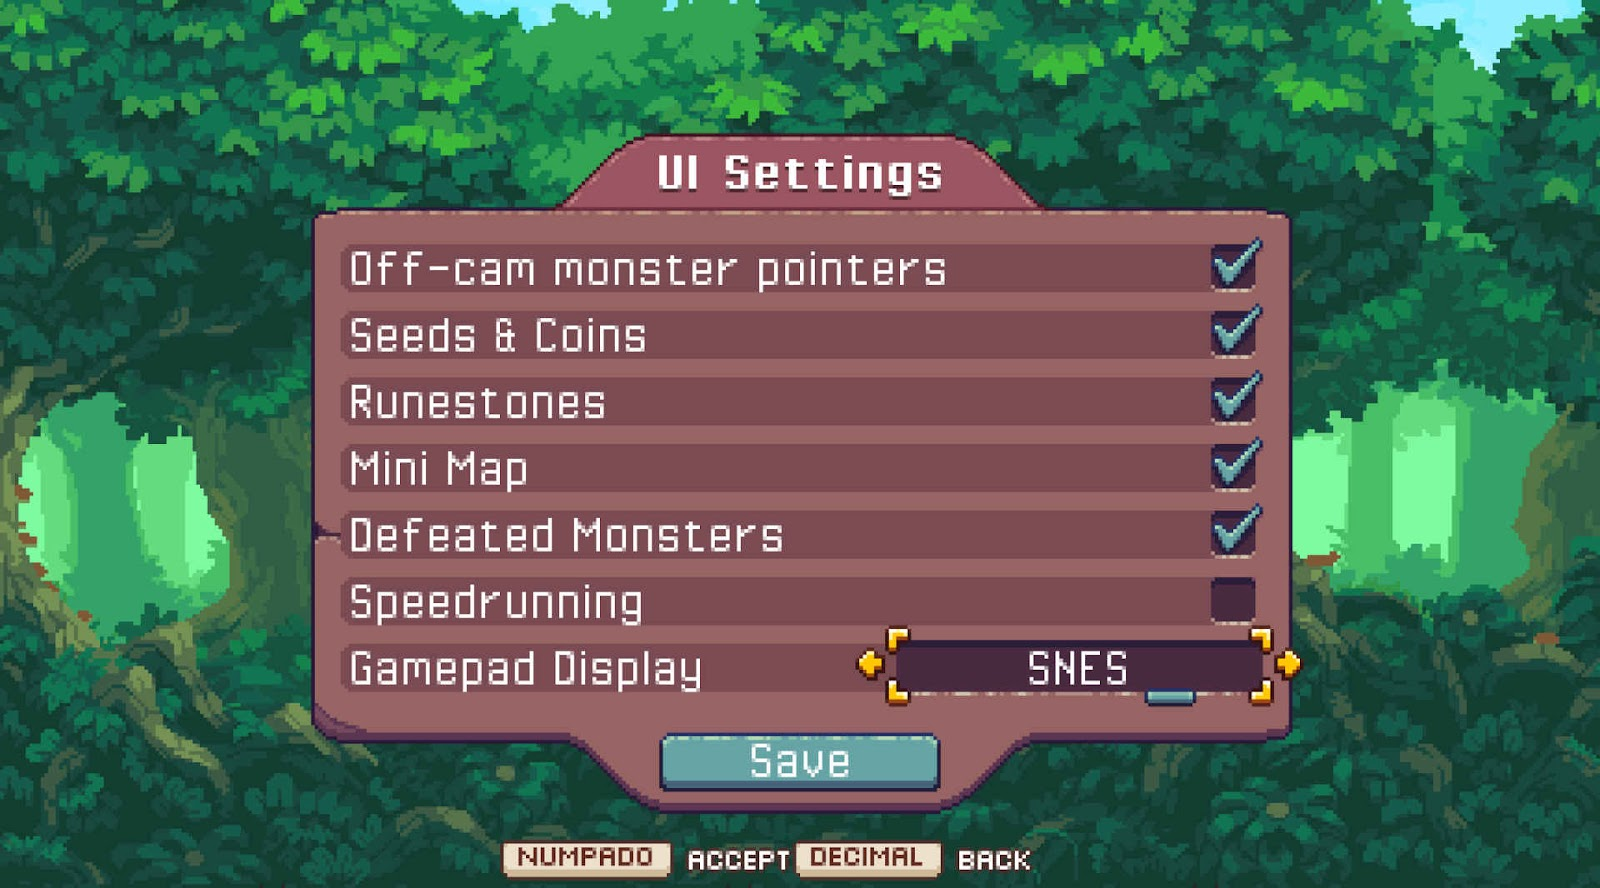 Off-cam monster pointers, seeds and coins, runestone, mini map, defeated monsters, speedrunning and gamepad display.